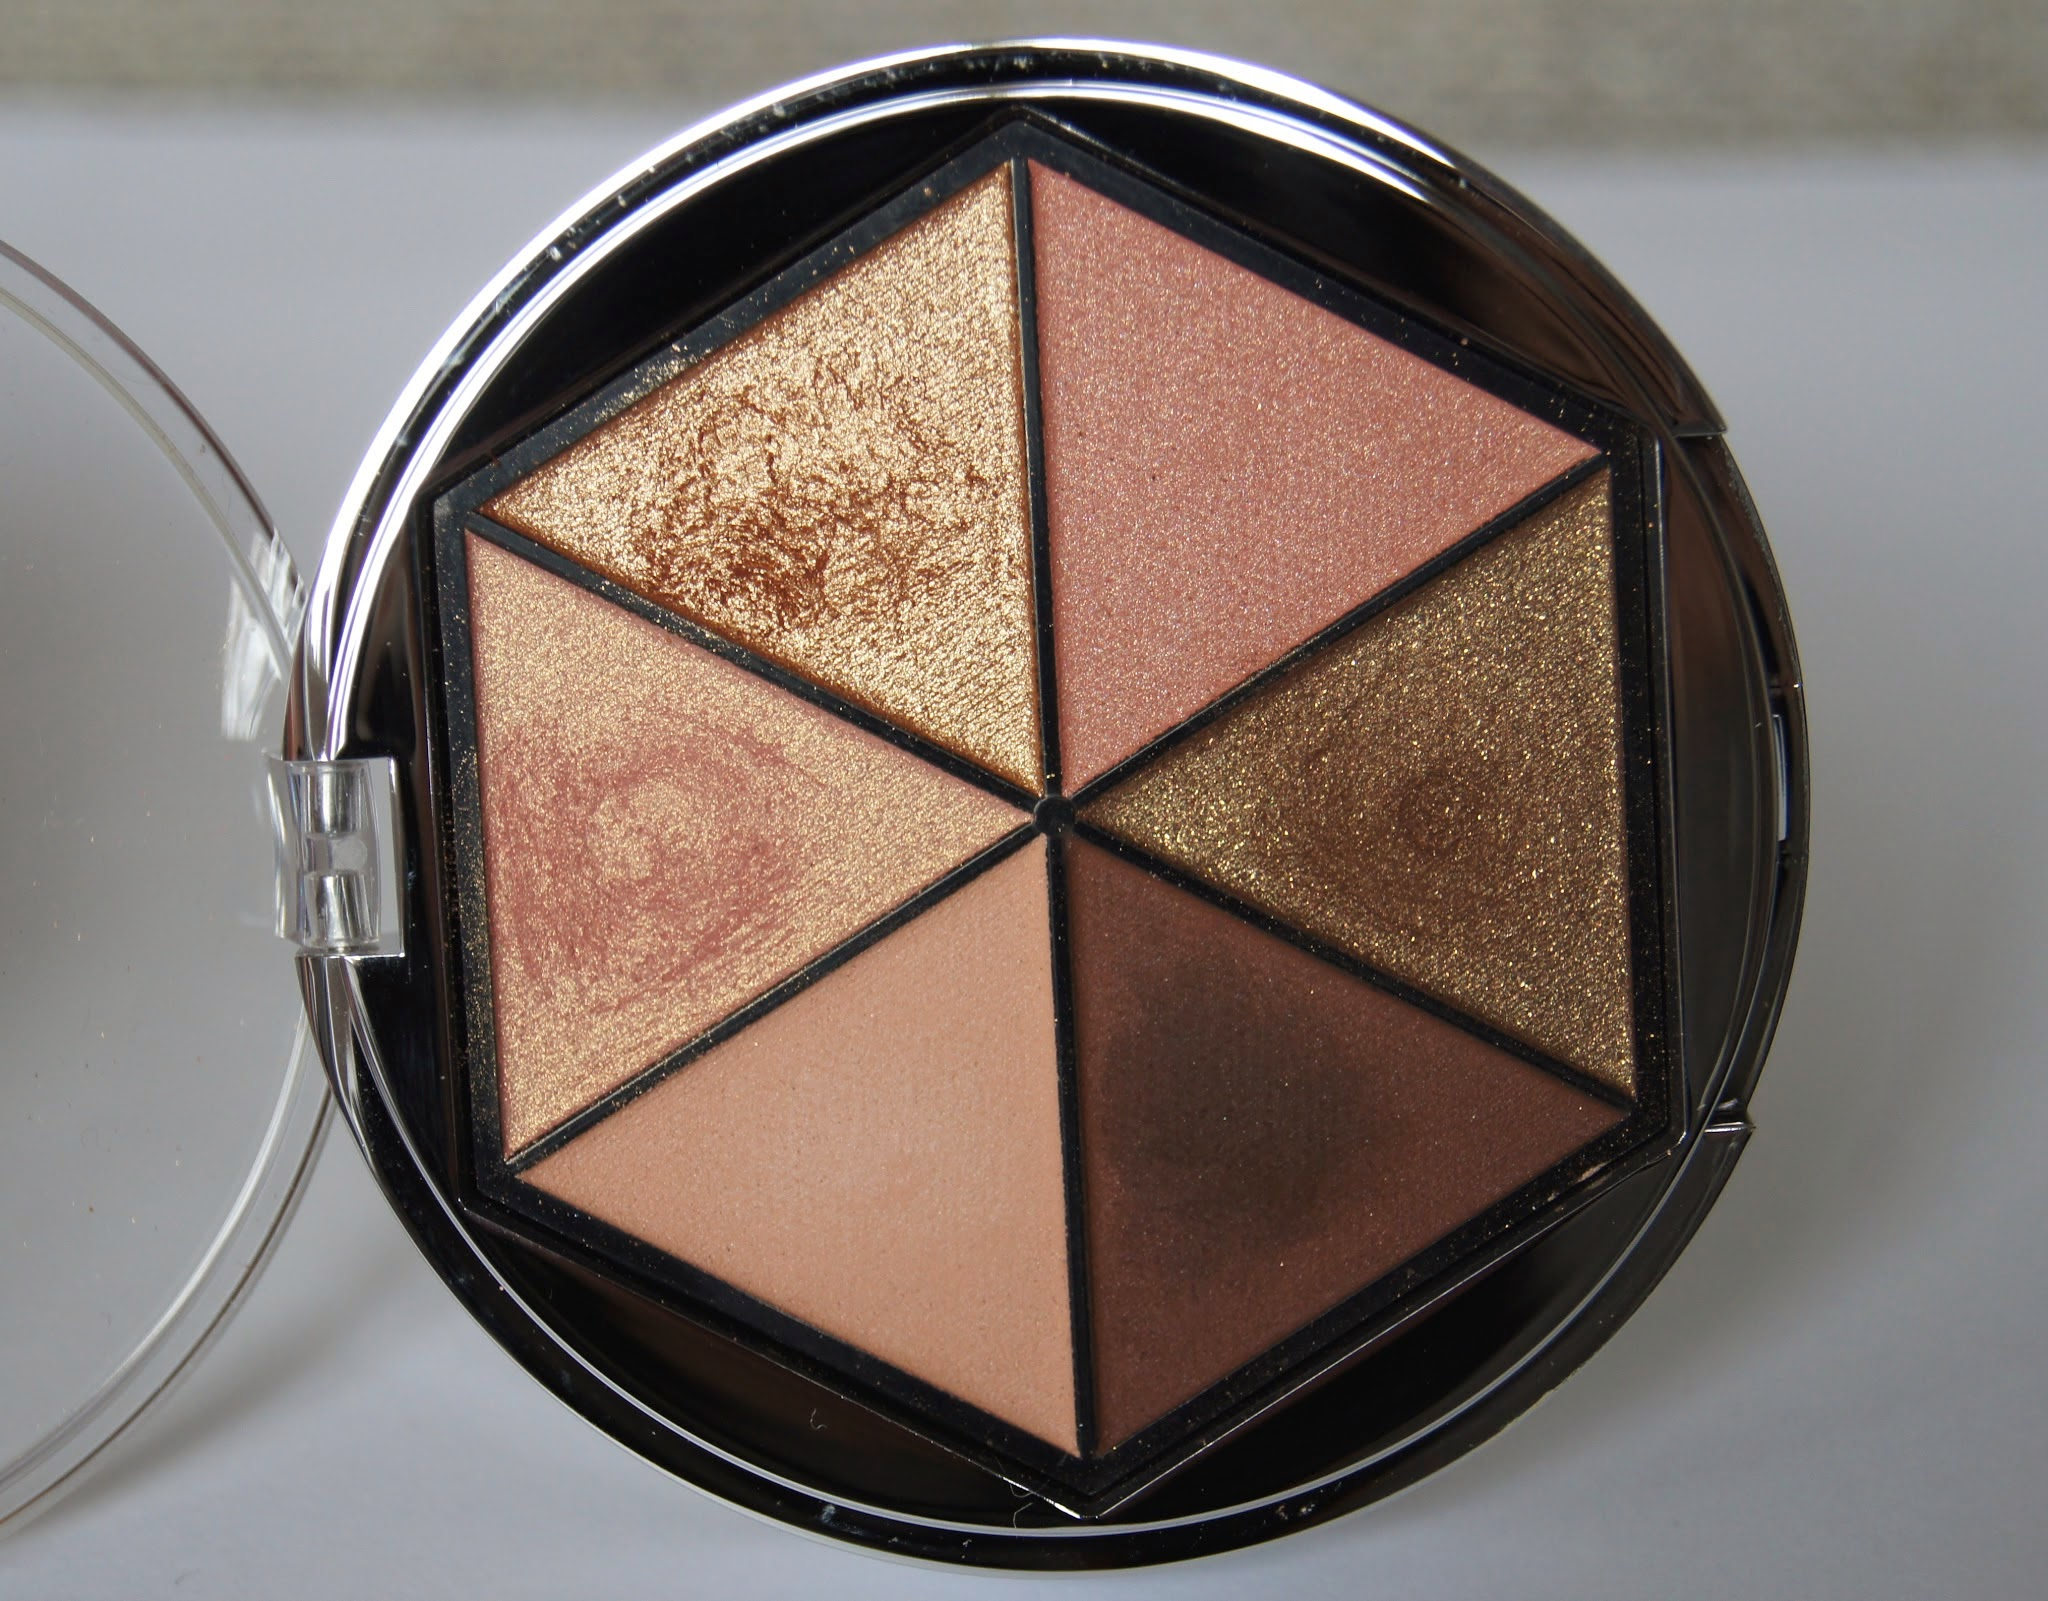 Smashbox Eyeshadow Palette Review Swatches